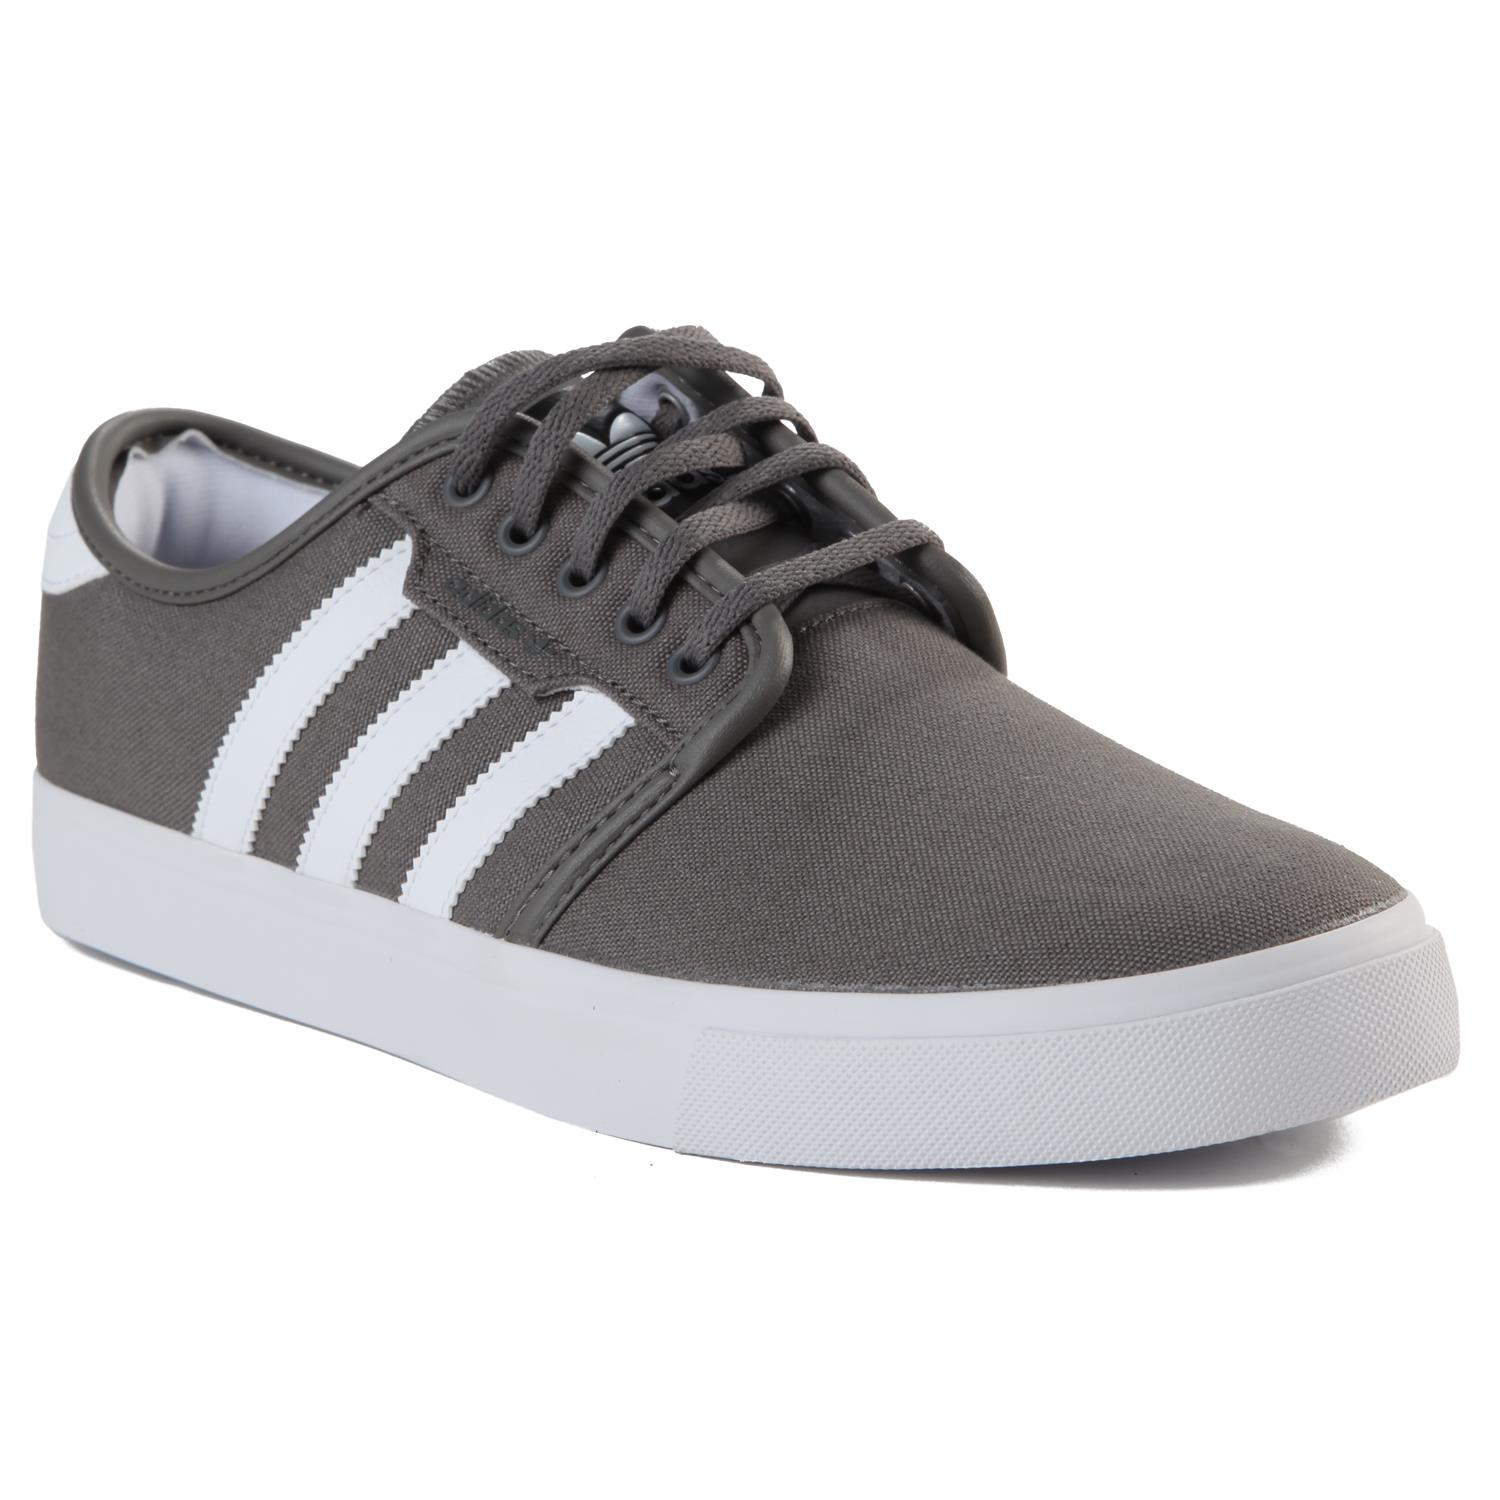 adidas seeley shoes evo outlet